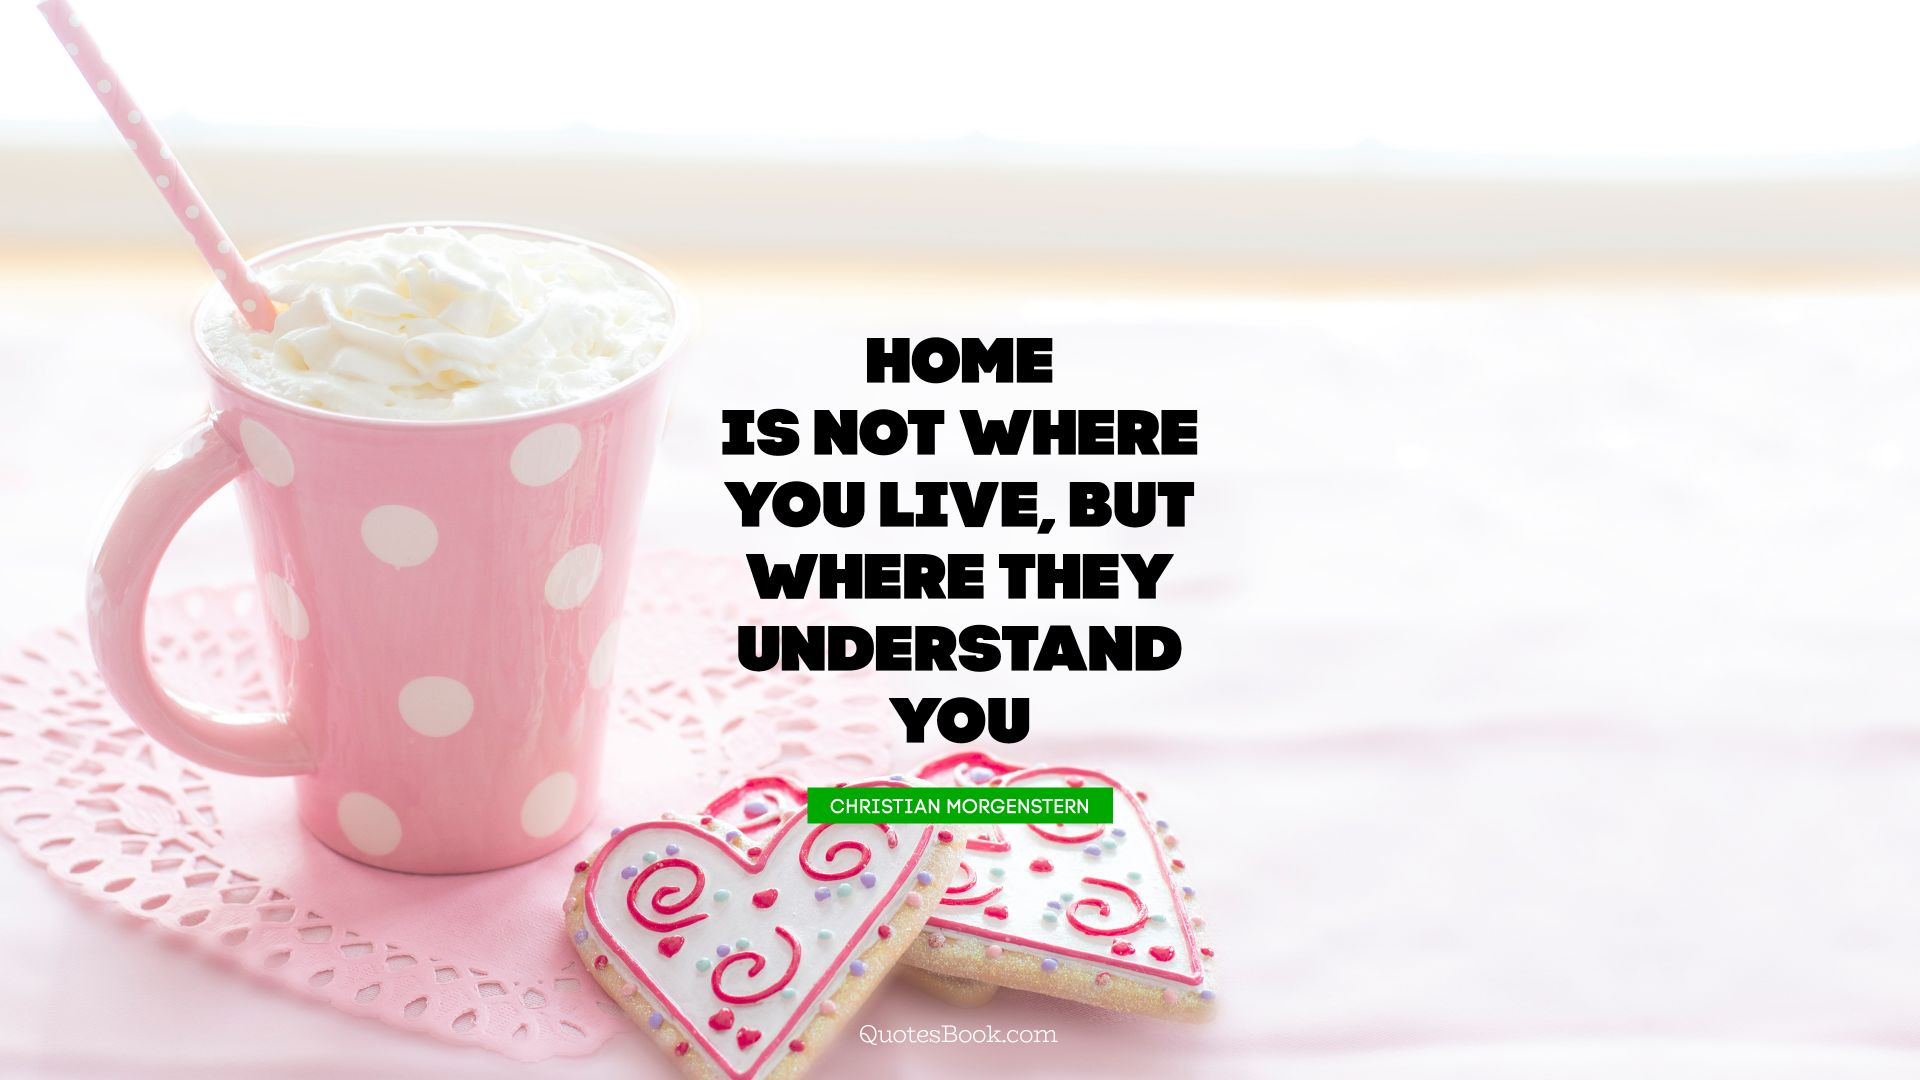 Home is not where you live, but where they understand you. - Quote by Christian Morgenstern